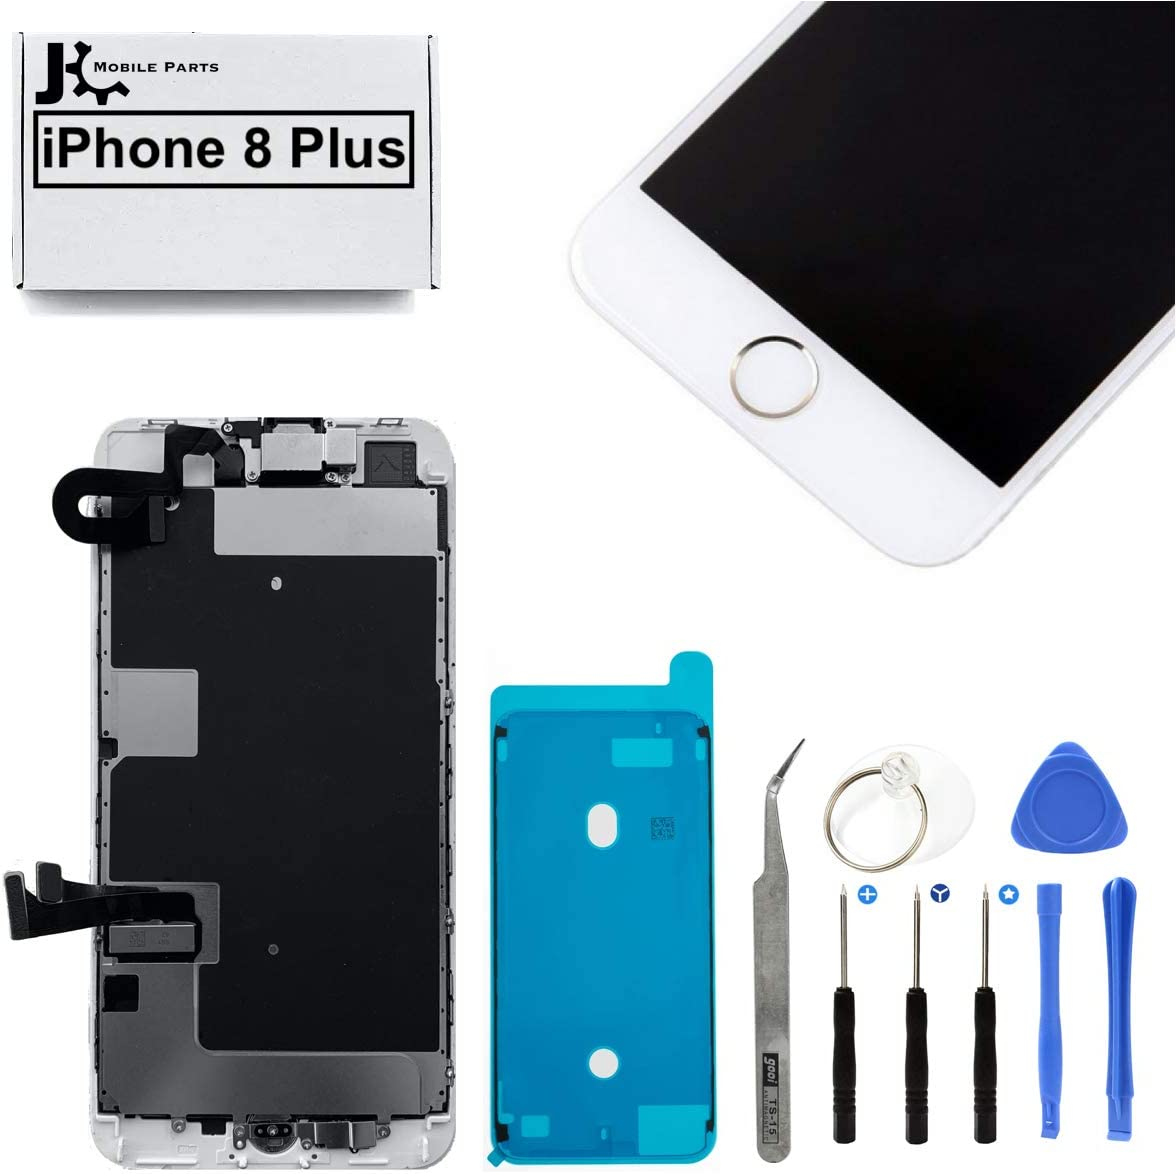 Full Screen Replacement LCD 3D Touch Assembly Front Camera Ear Speaker Home Button with Frame Adhesive and Repair Tools for iPhone 8 Plus 5.5 inch (Gold)